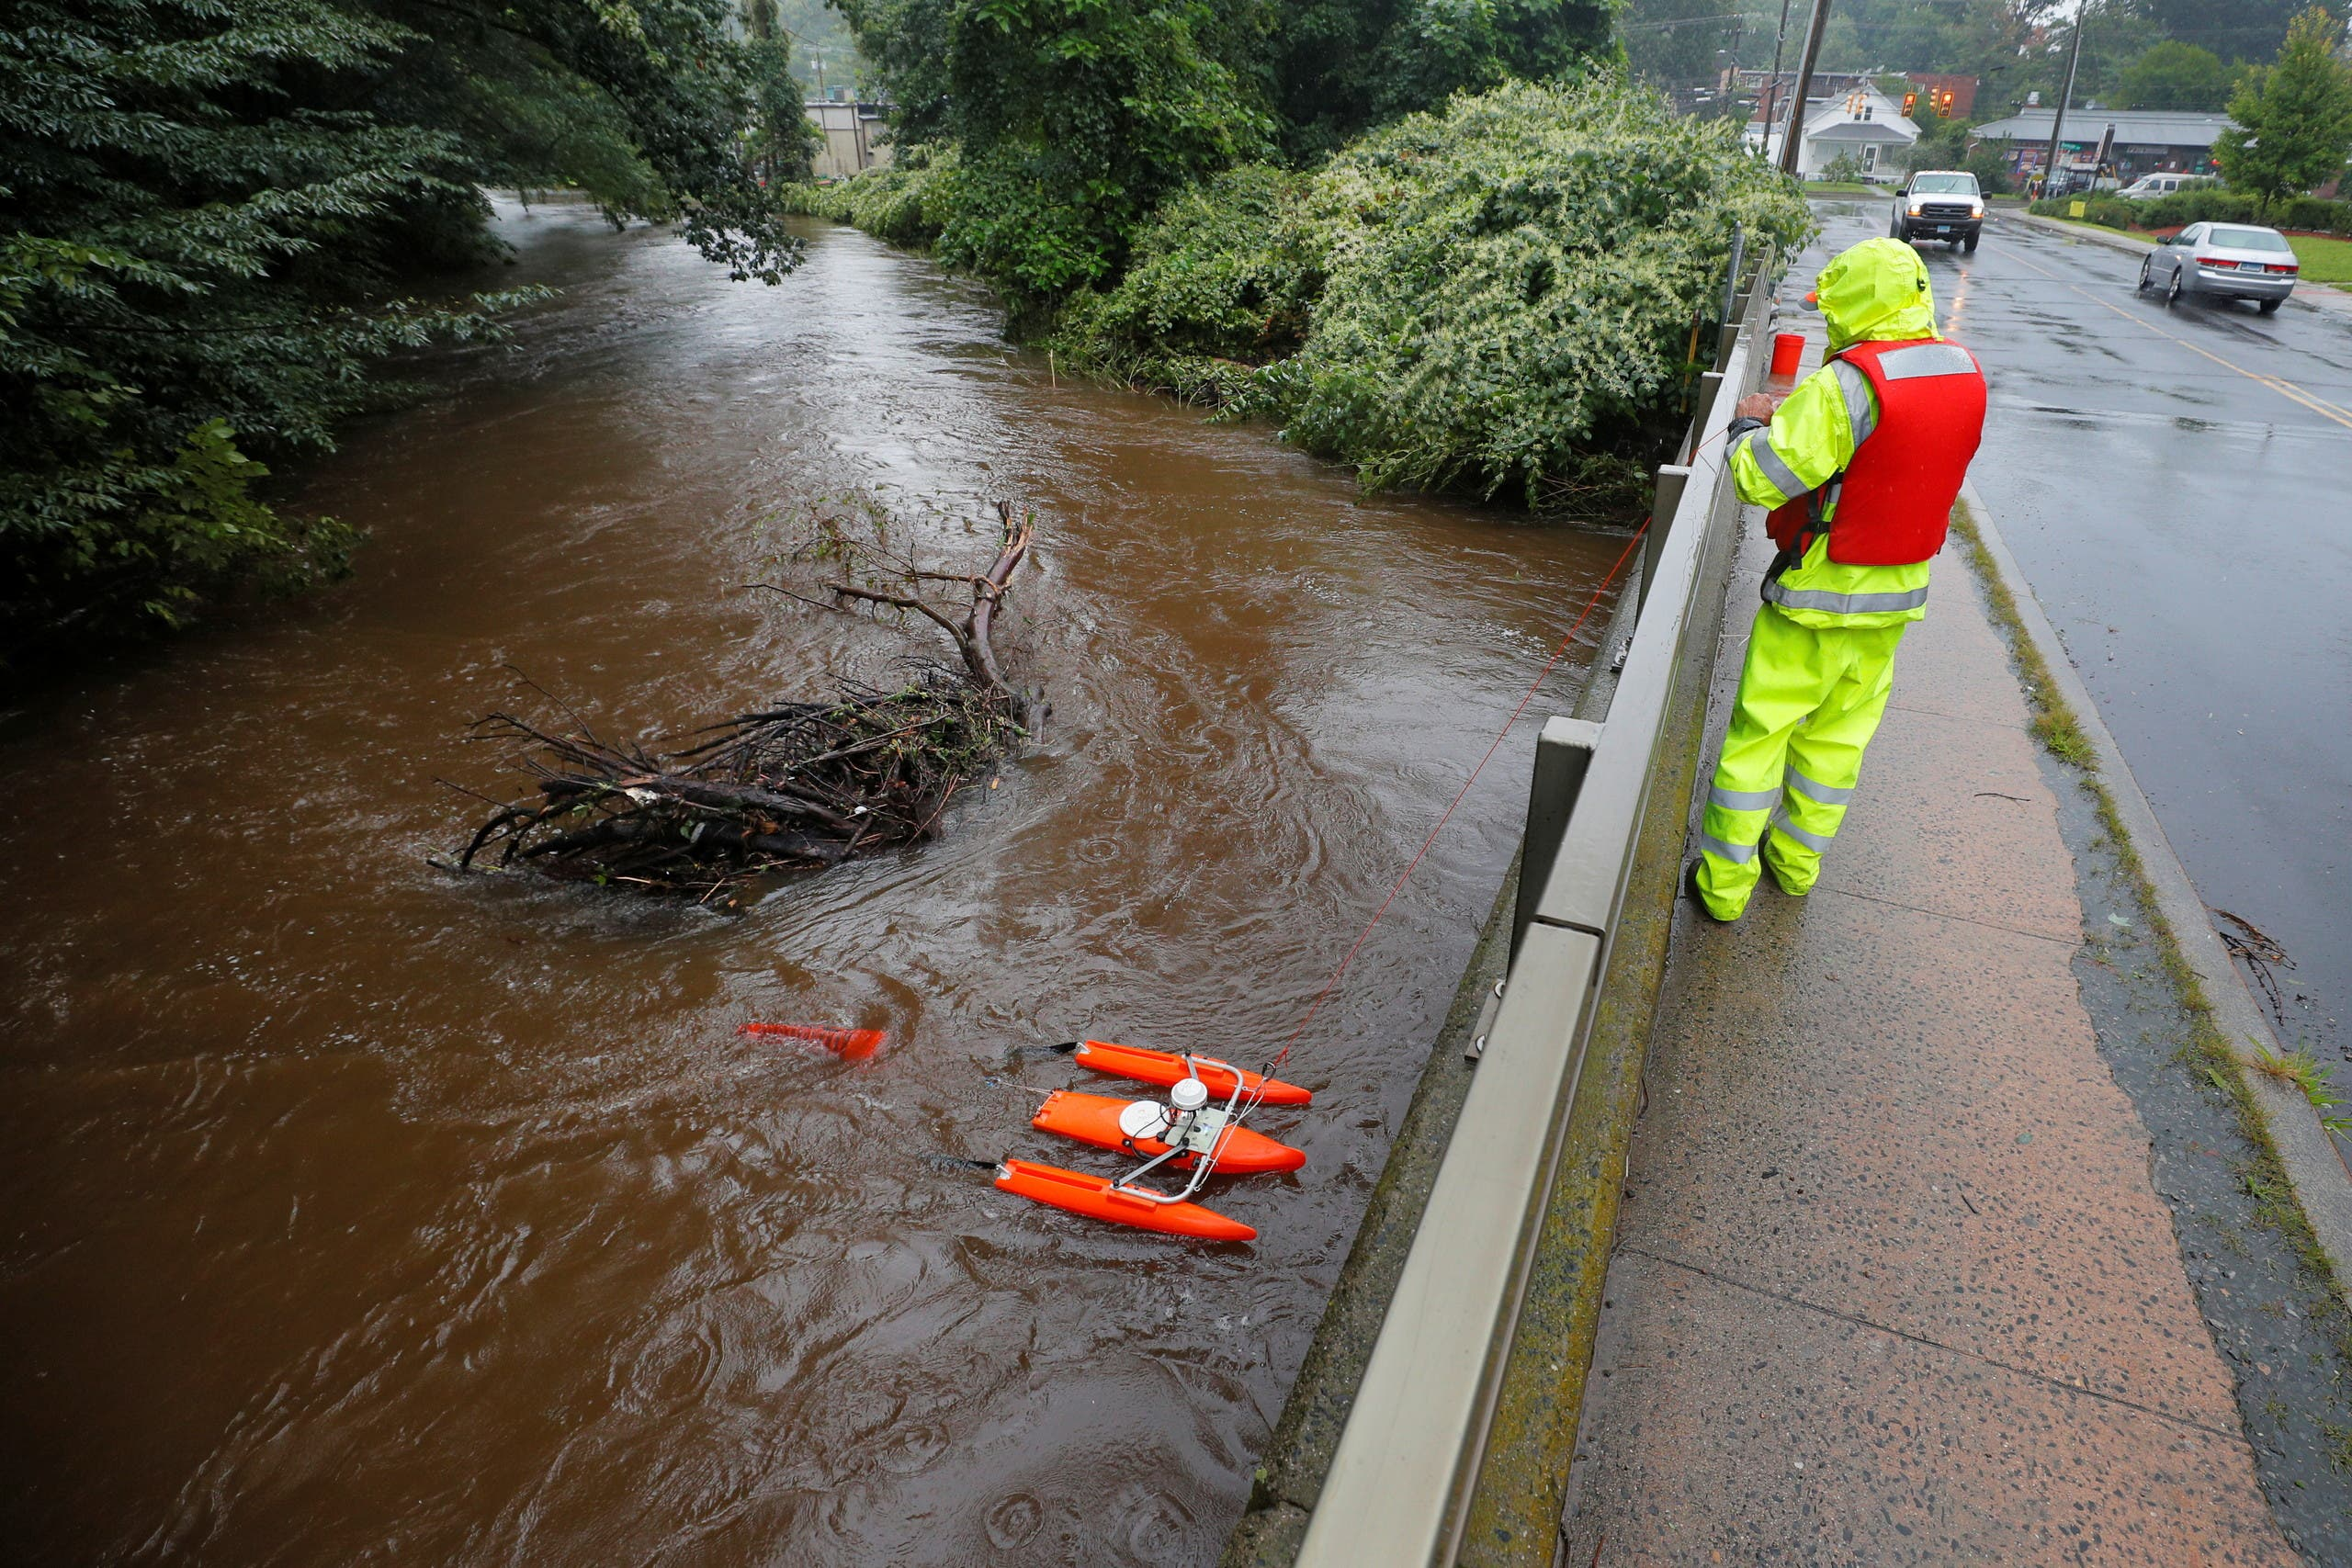 JR Bubicki, with the U.S. Geological Survey (USGS), uses a boat with sensors in the Hockanum River, swollen from the rains from Tropical Storm Henri, to measure the flow rate in East Hartford, Connecticut, US, August 23, 2021. (Reuters)